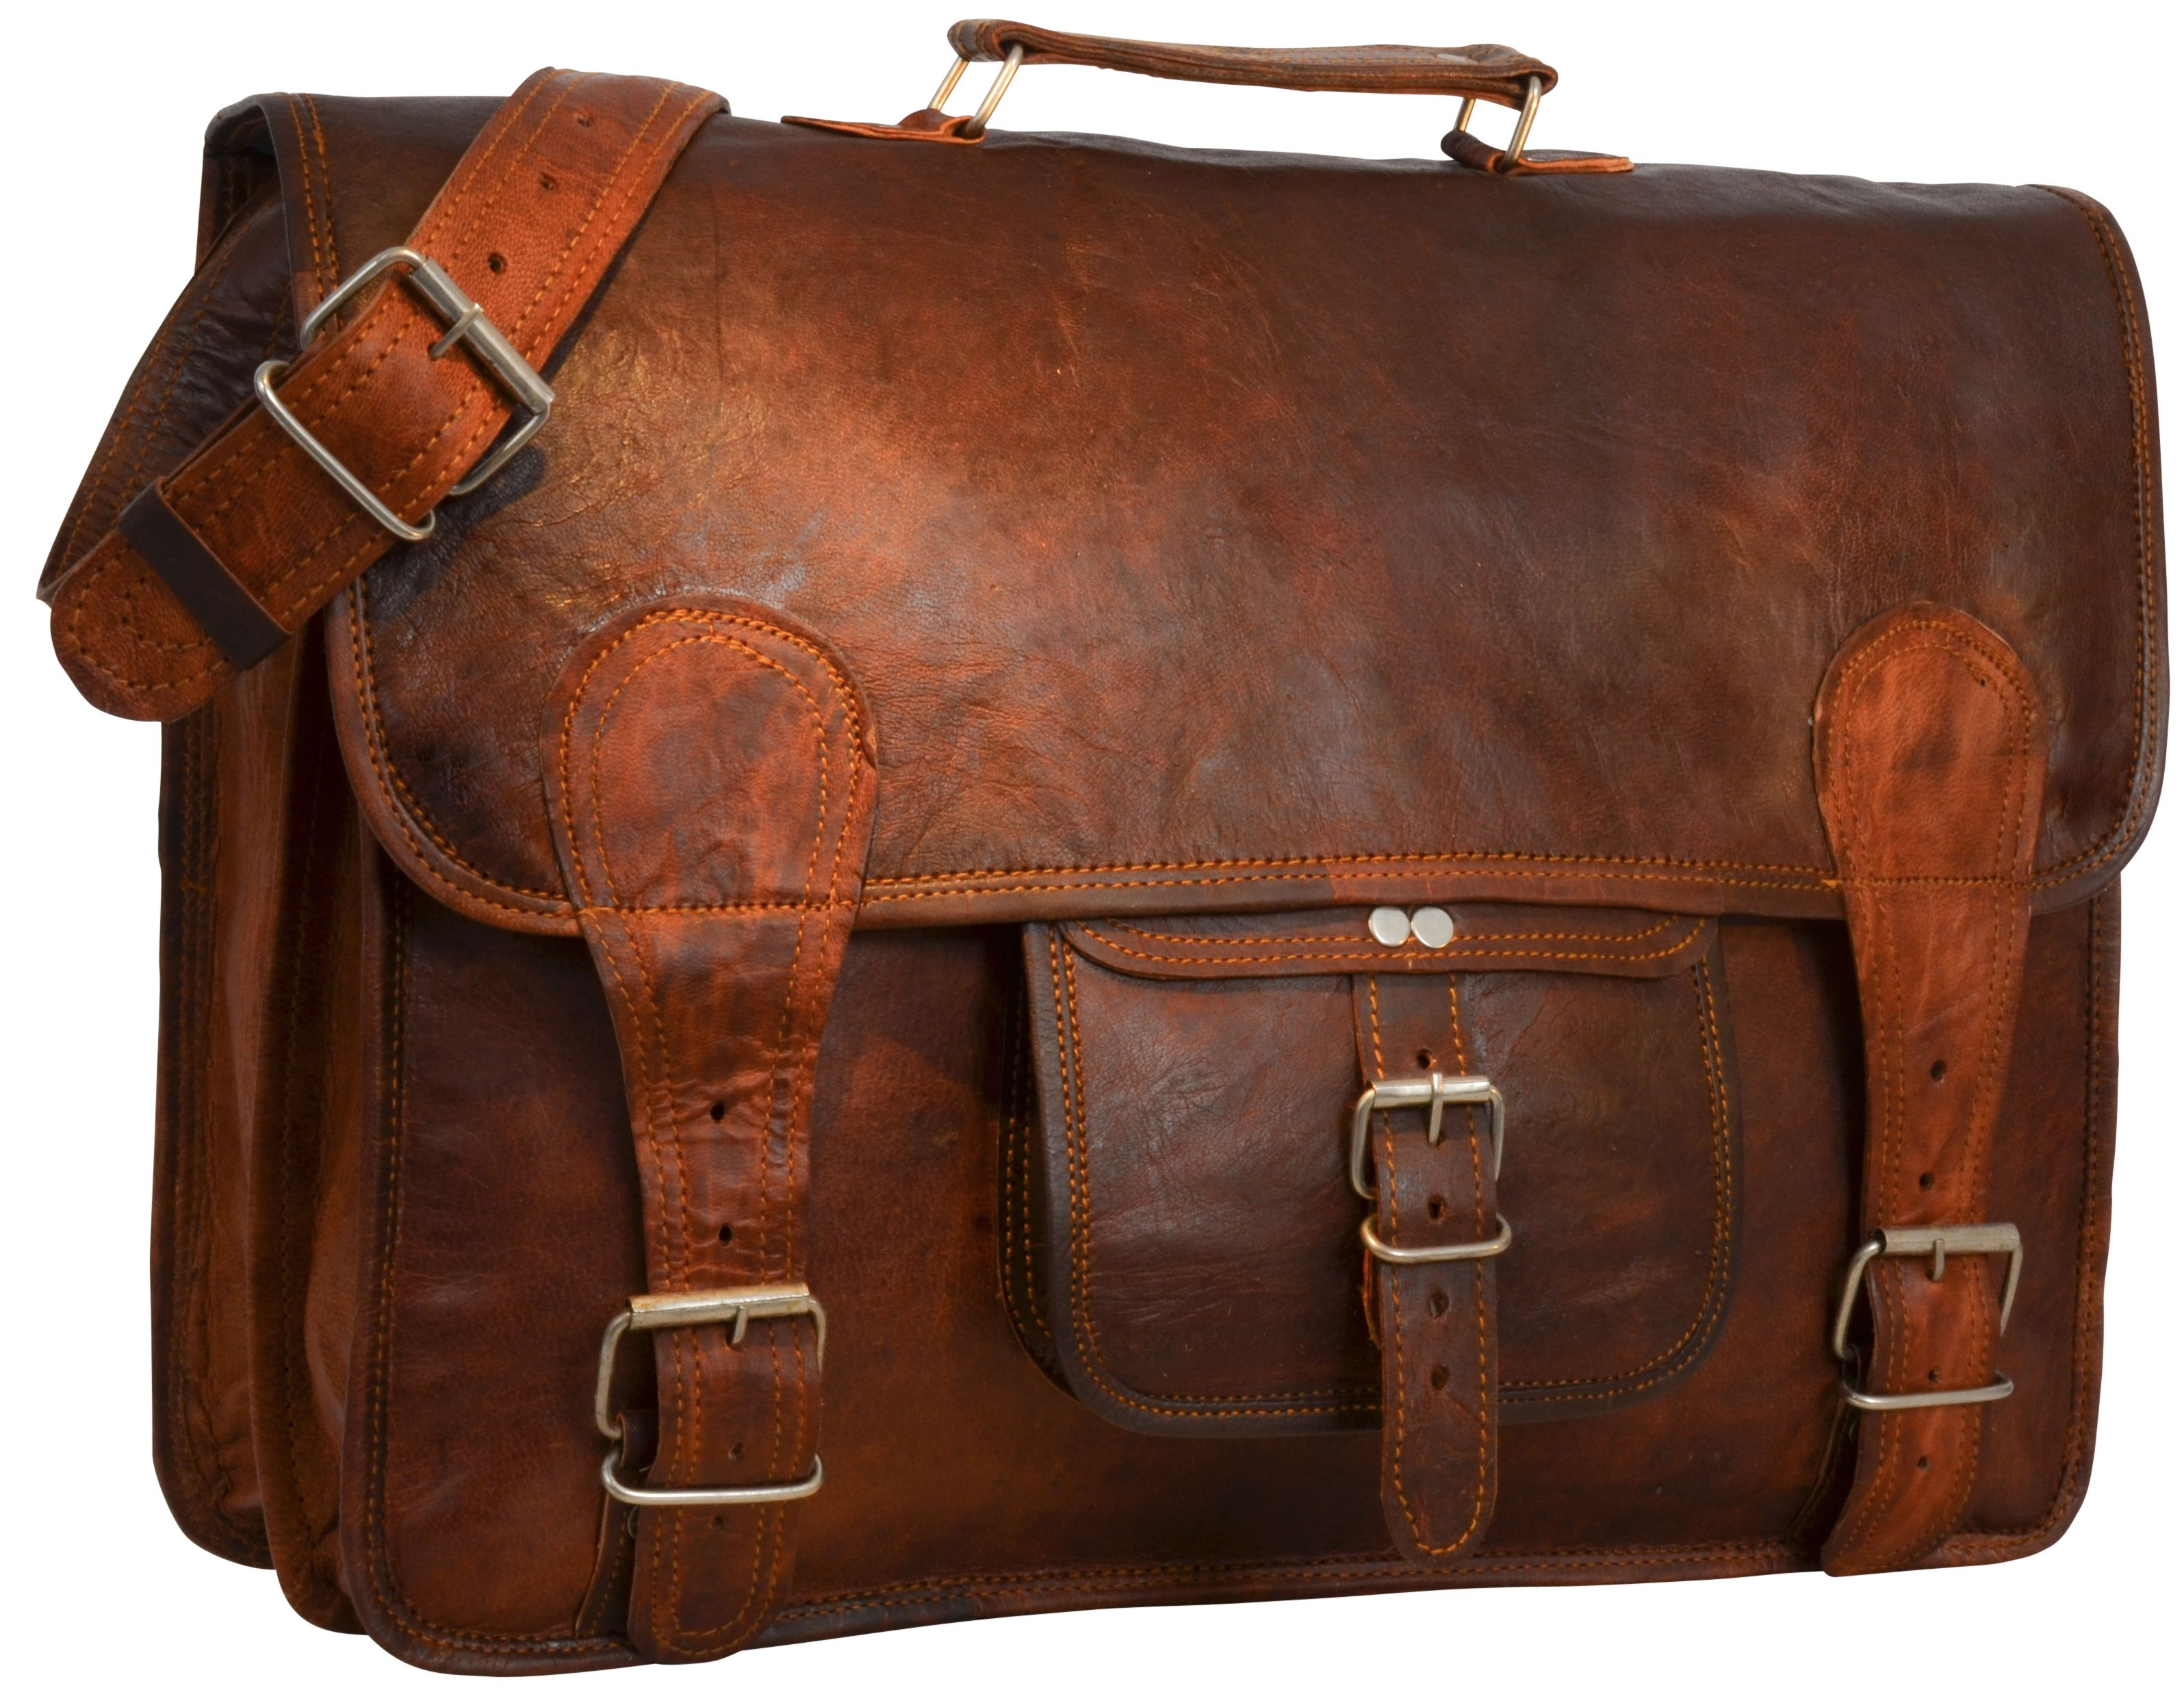 A Real Leather Vintage Style Satchel Bag Finlay Can Be The Perfect Companion For Your Day Gusti Leather U31 Vintage Leather Bag Satchel Satchel Bags